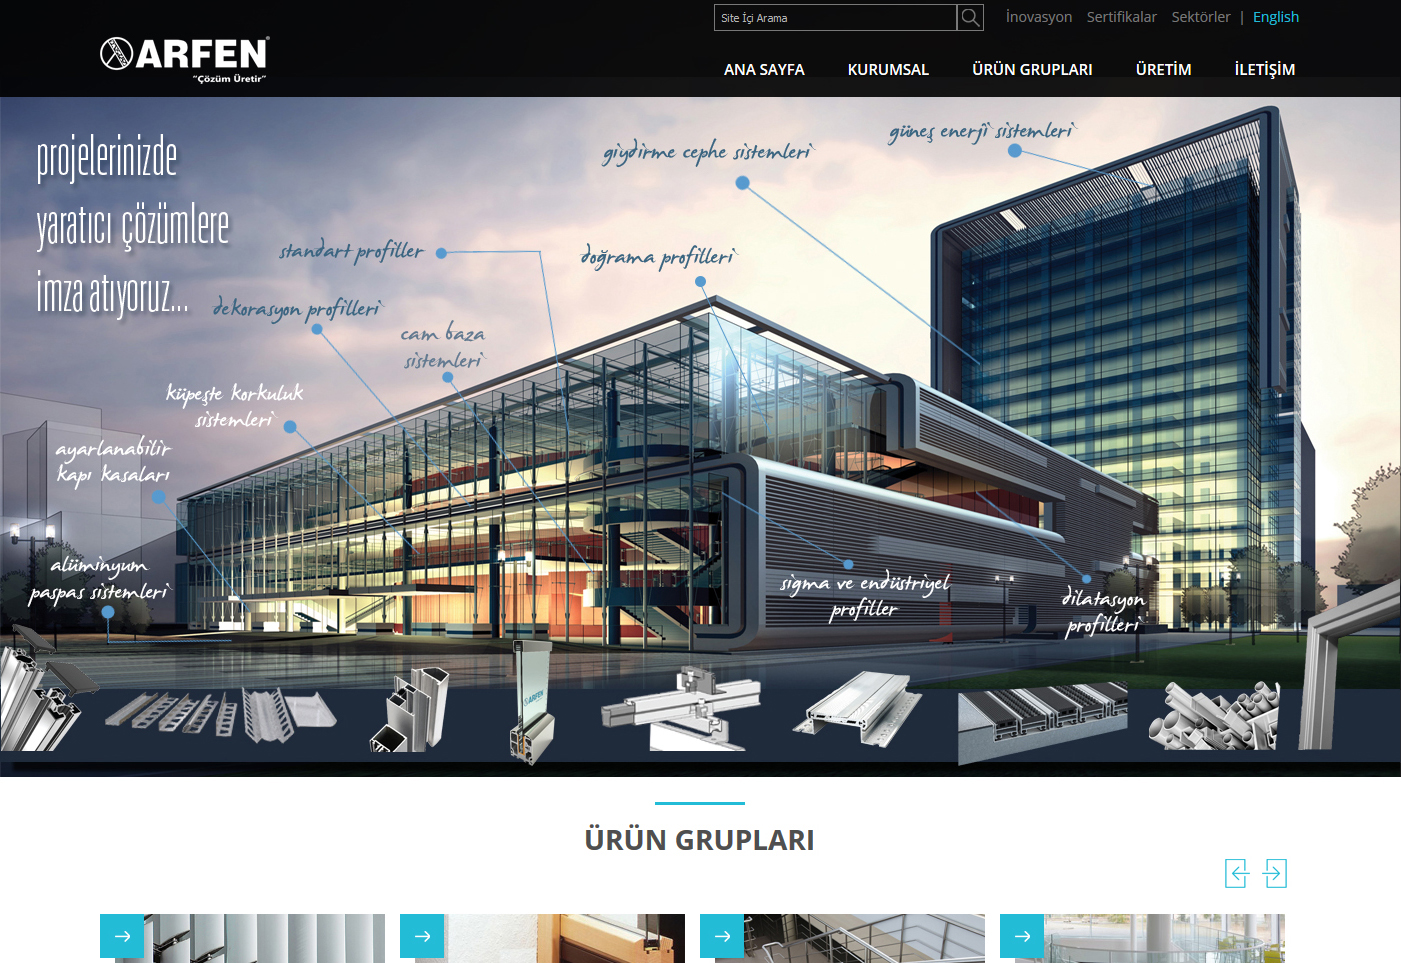 ARFEN ALUMINUM WEB SITE IS ONLINE IT'S NEW FACE